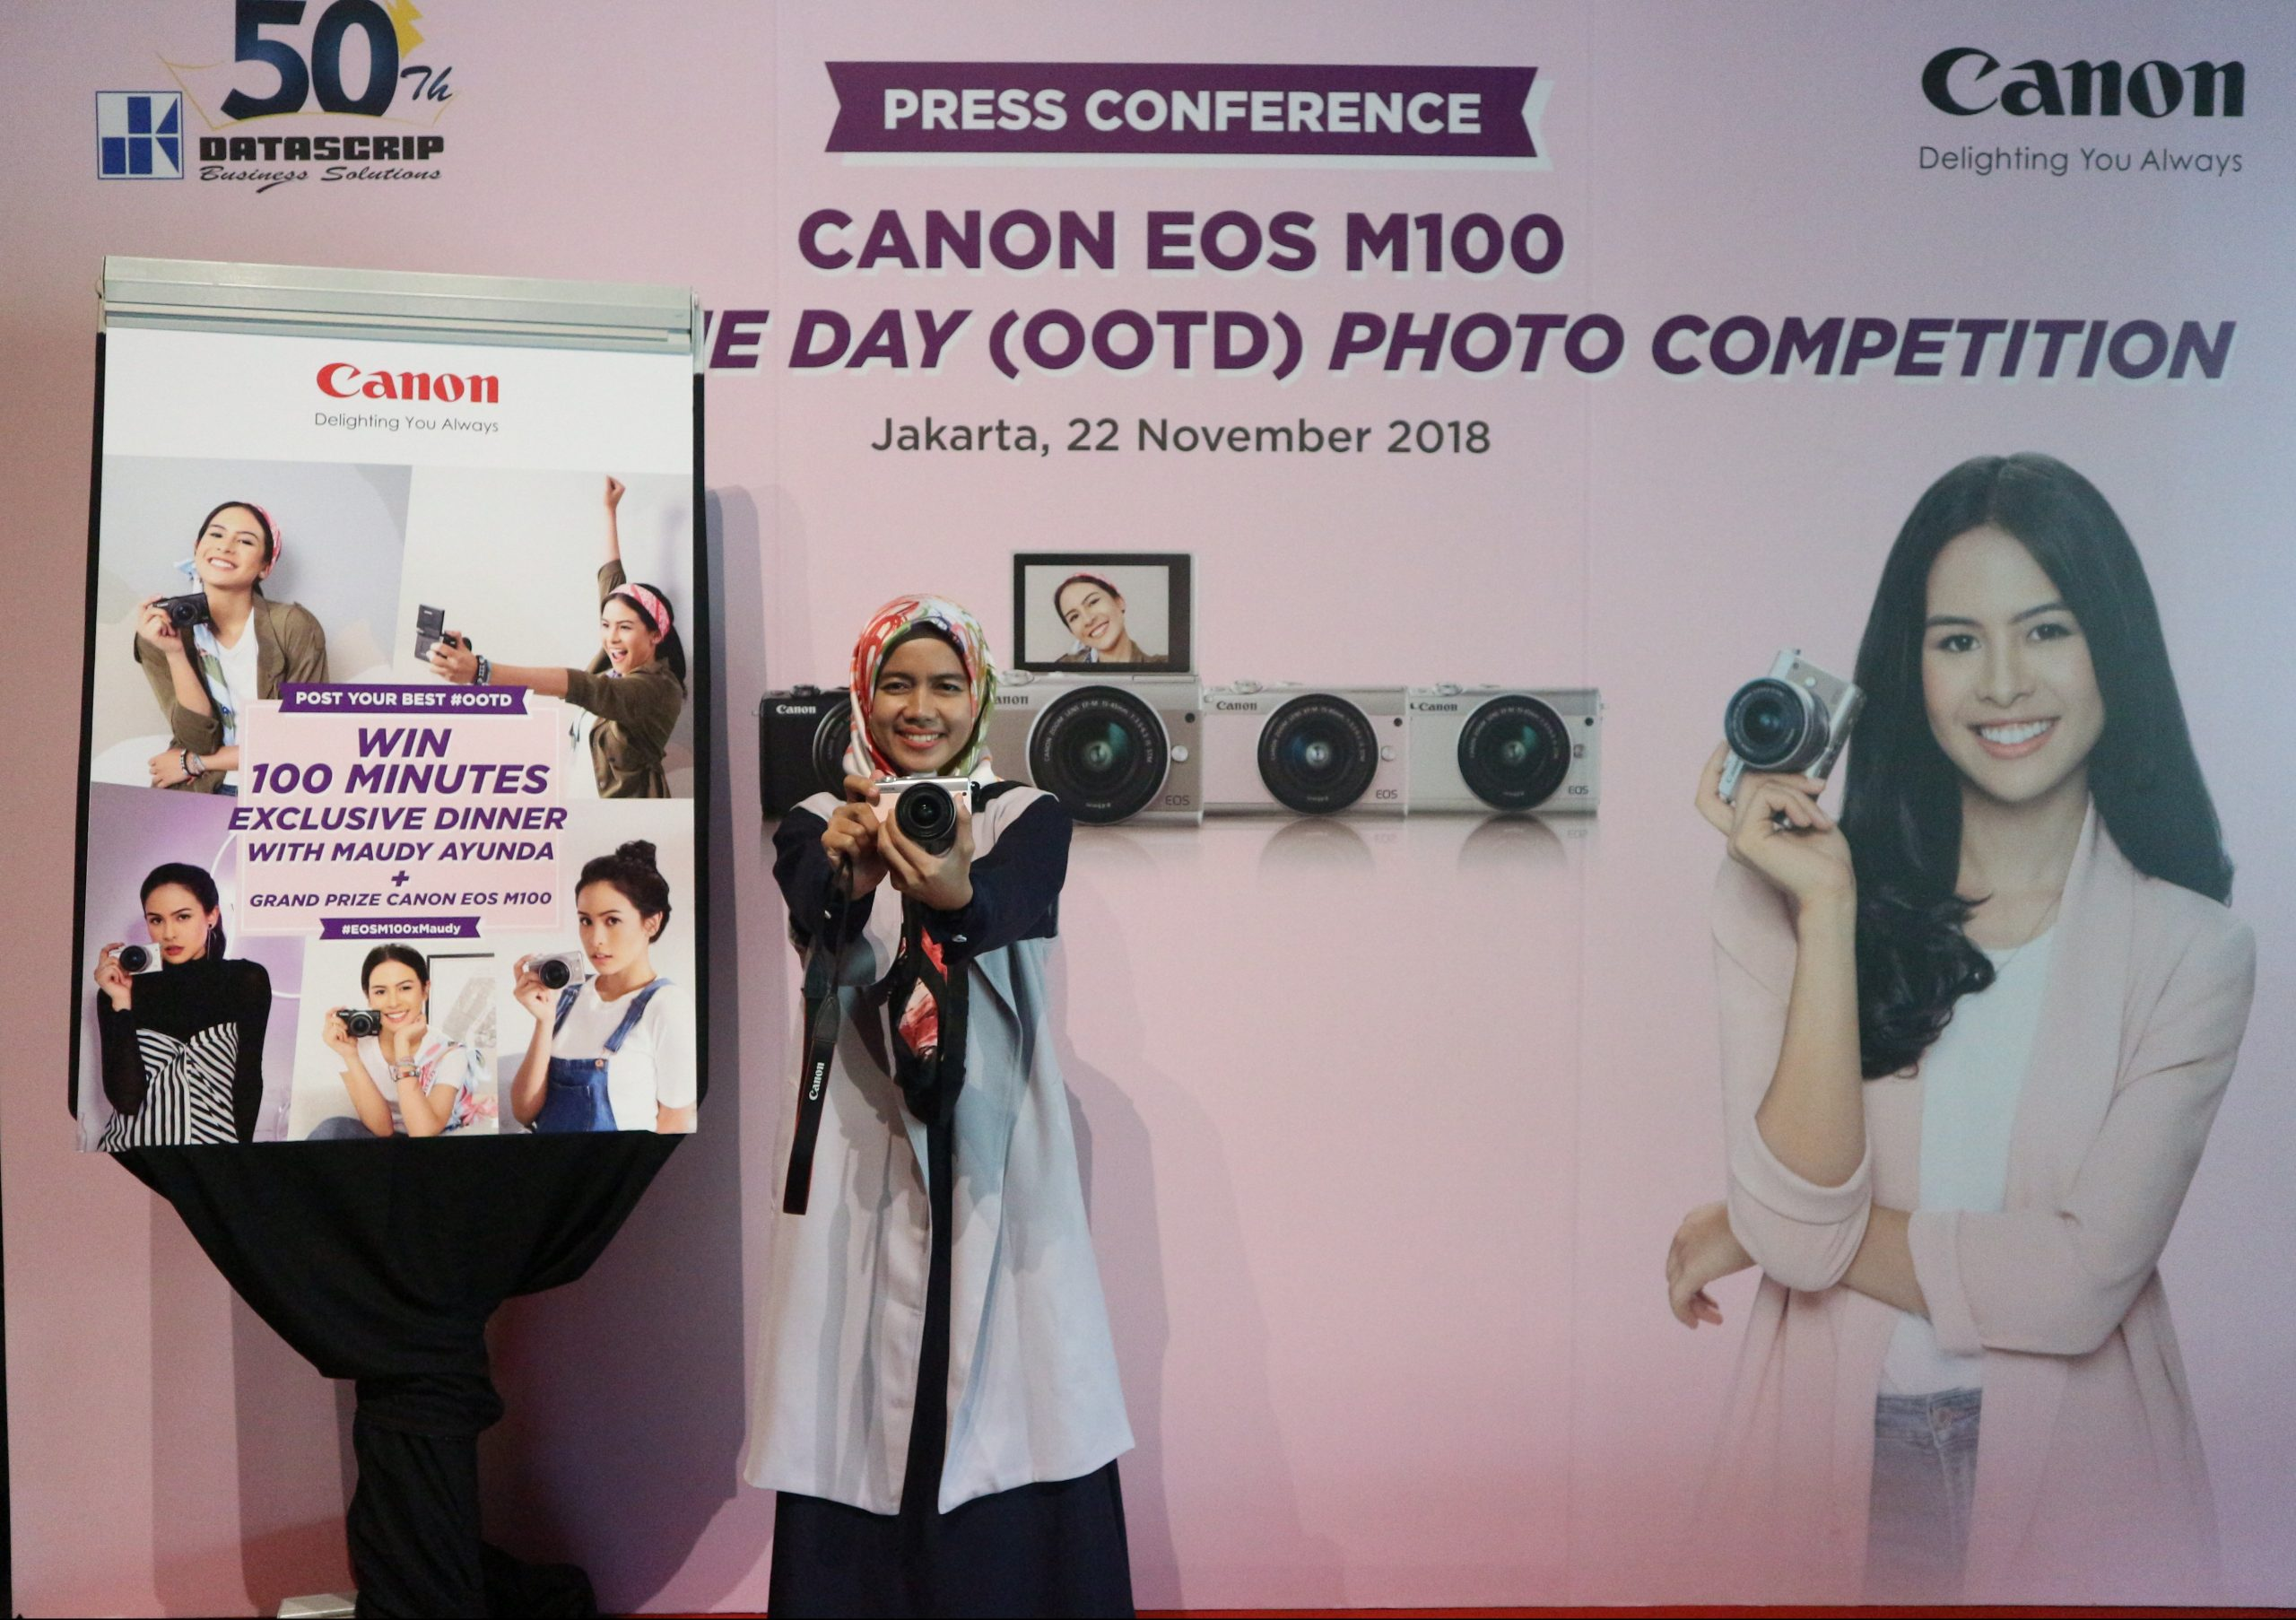 Canon EOS M100 OOTD Photo Competition